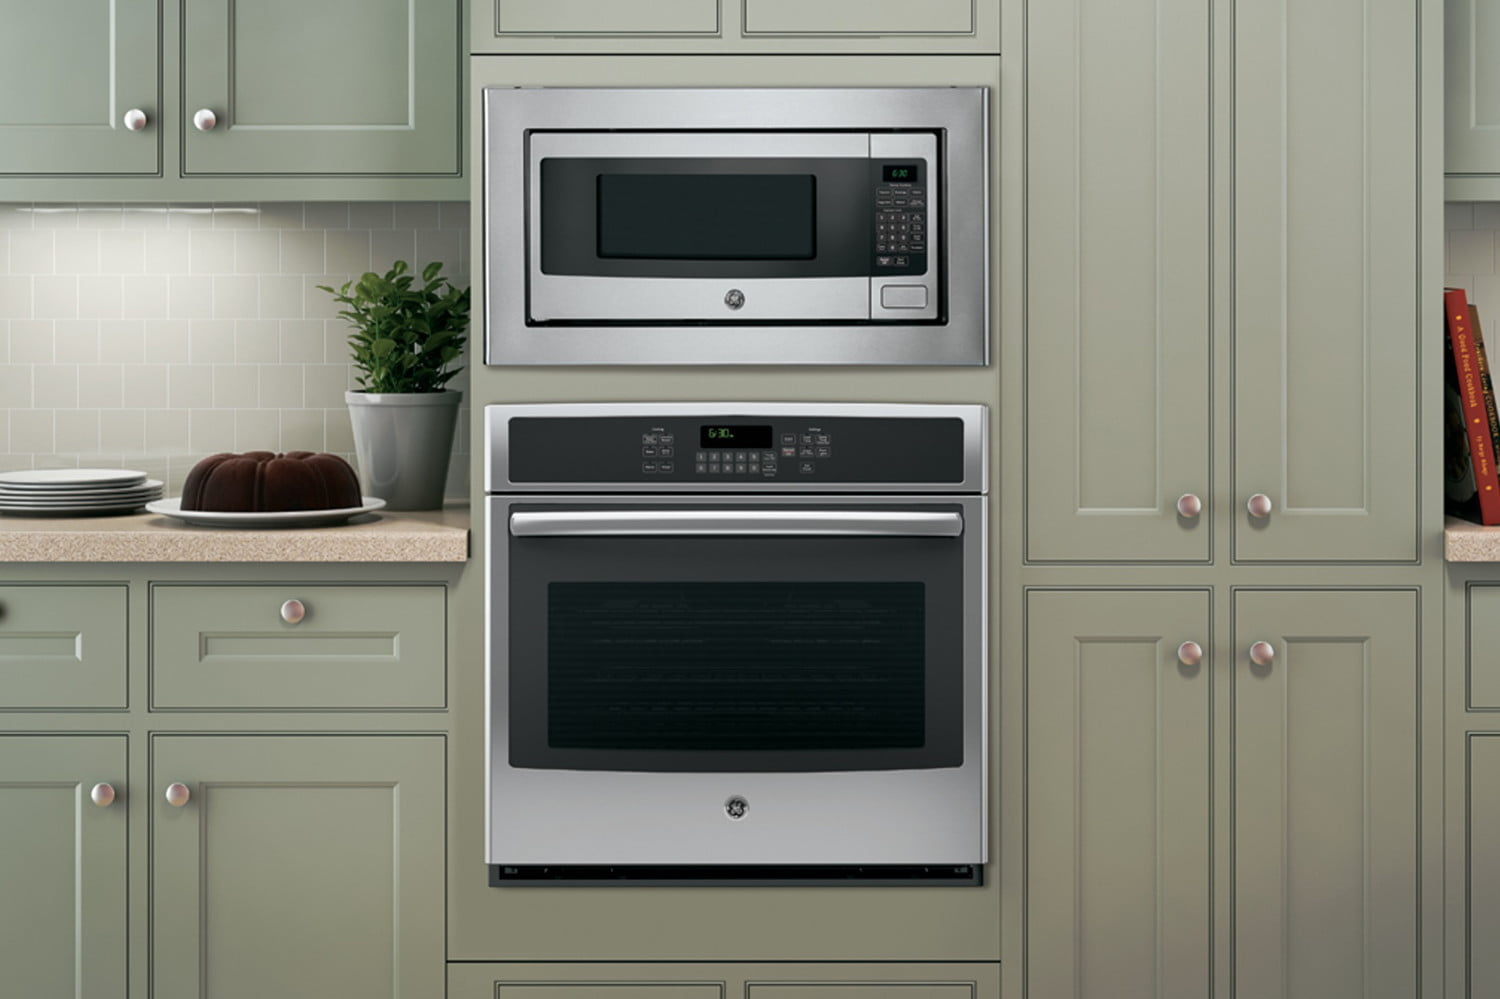 steel range interior cgi the cu stainless oven bin with maytag ft ajmadison heritage over series microwave front